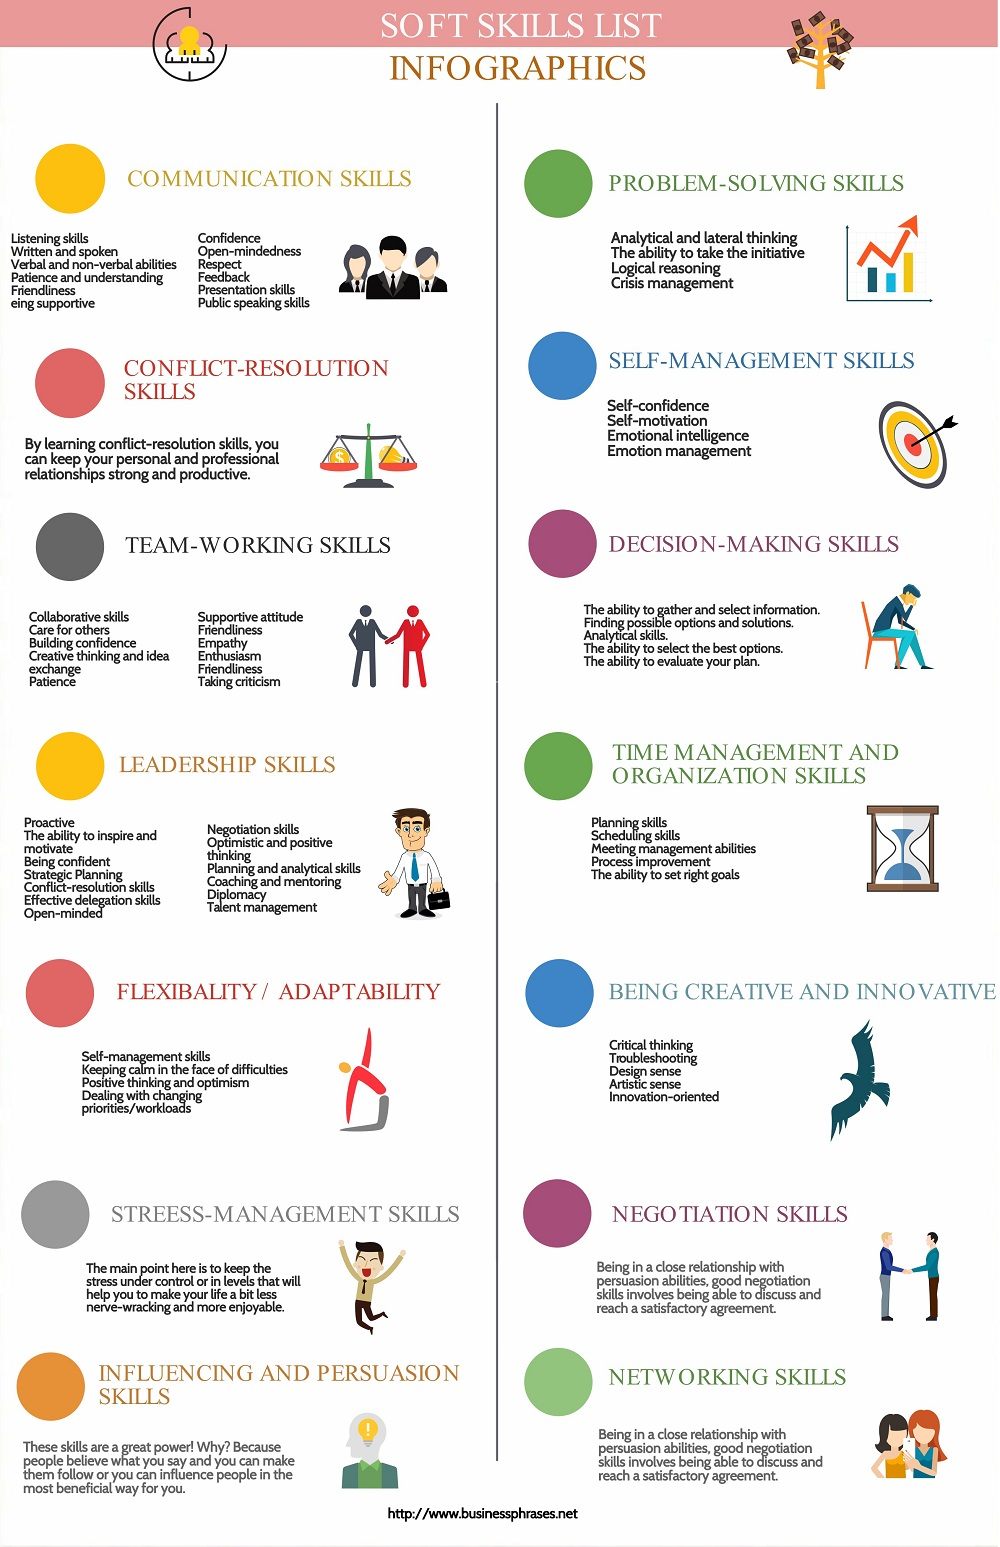 Soft Skills List Infographic Visual Ly